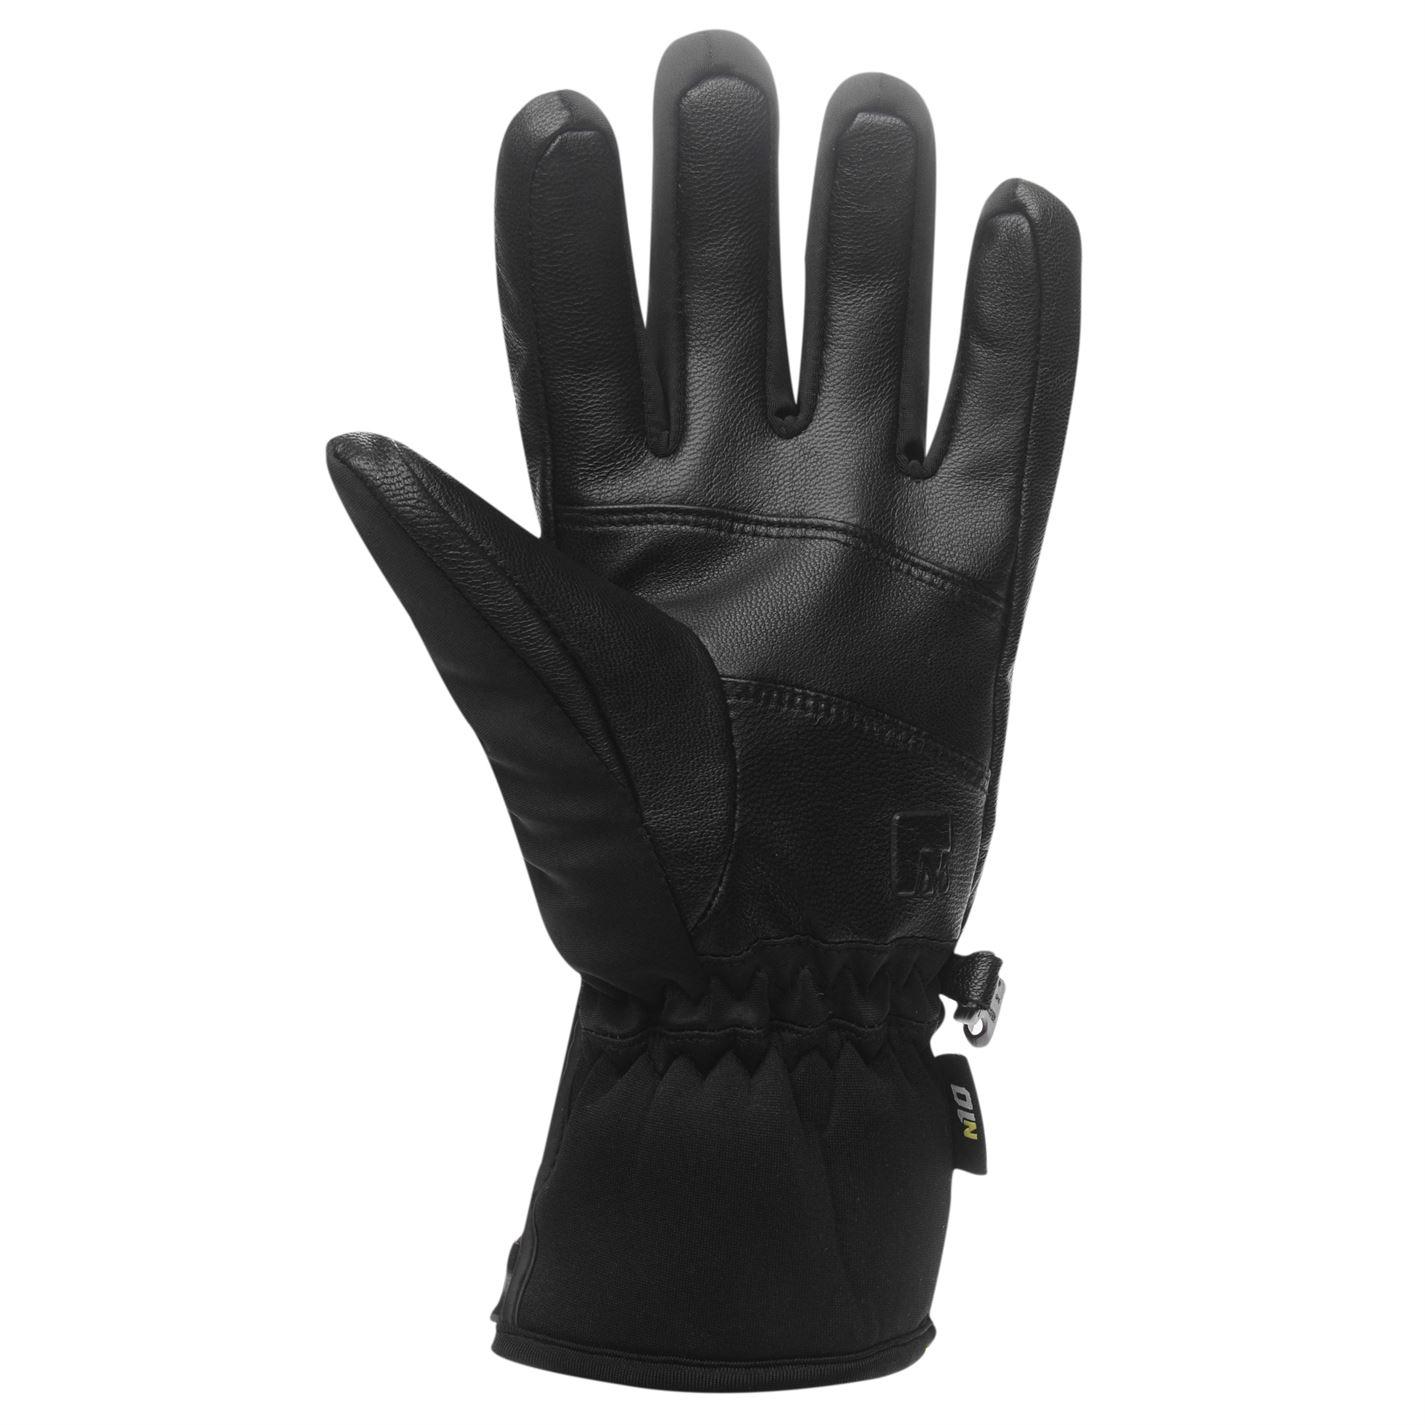 159f4aa80 Details about Nevica Womens Banff Ski Gloves Waterproof Windproof  Lightweight Zip Insulated